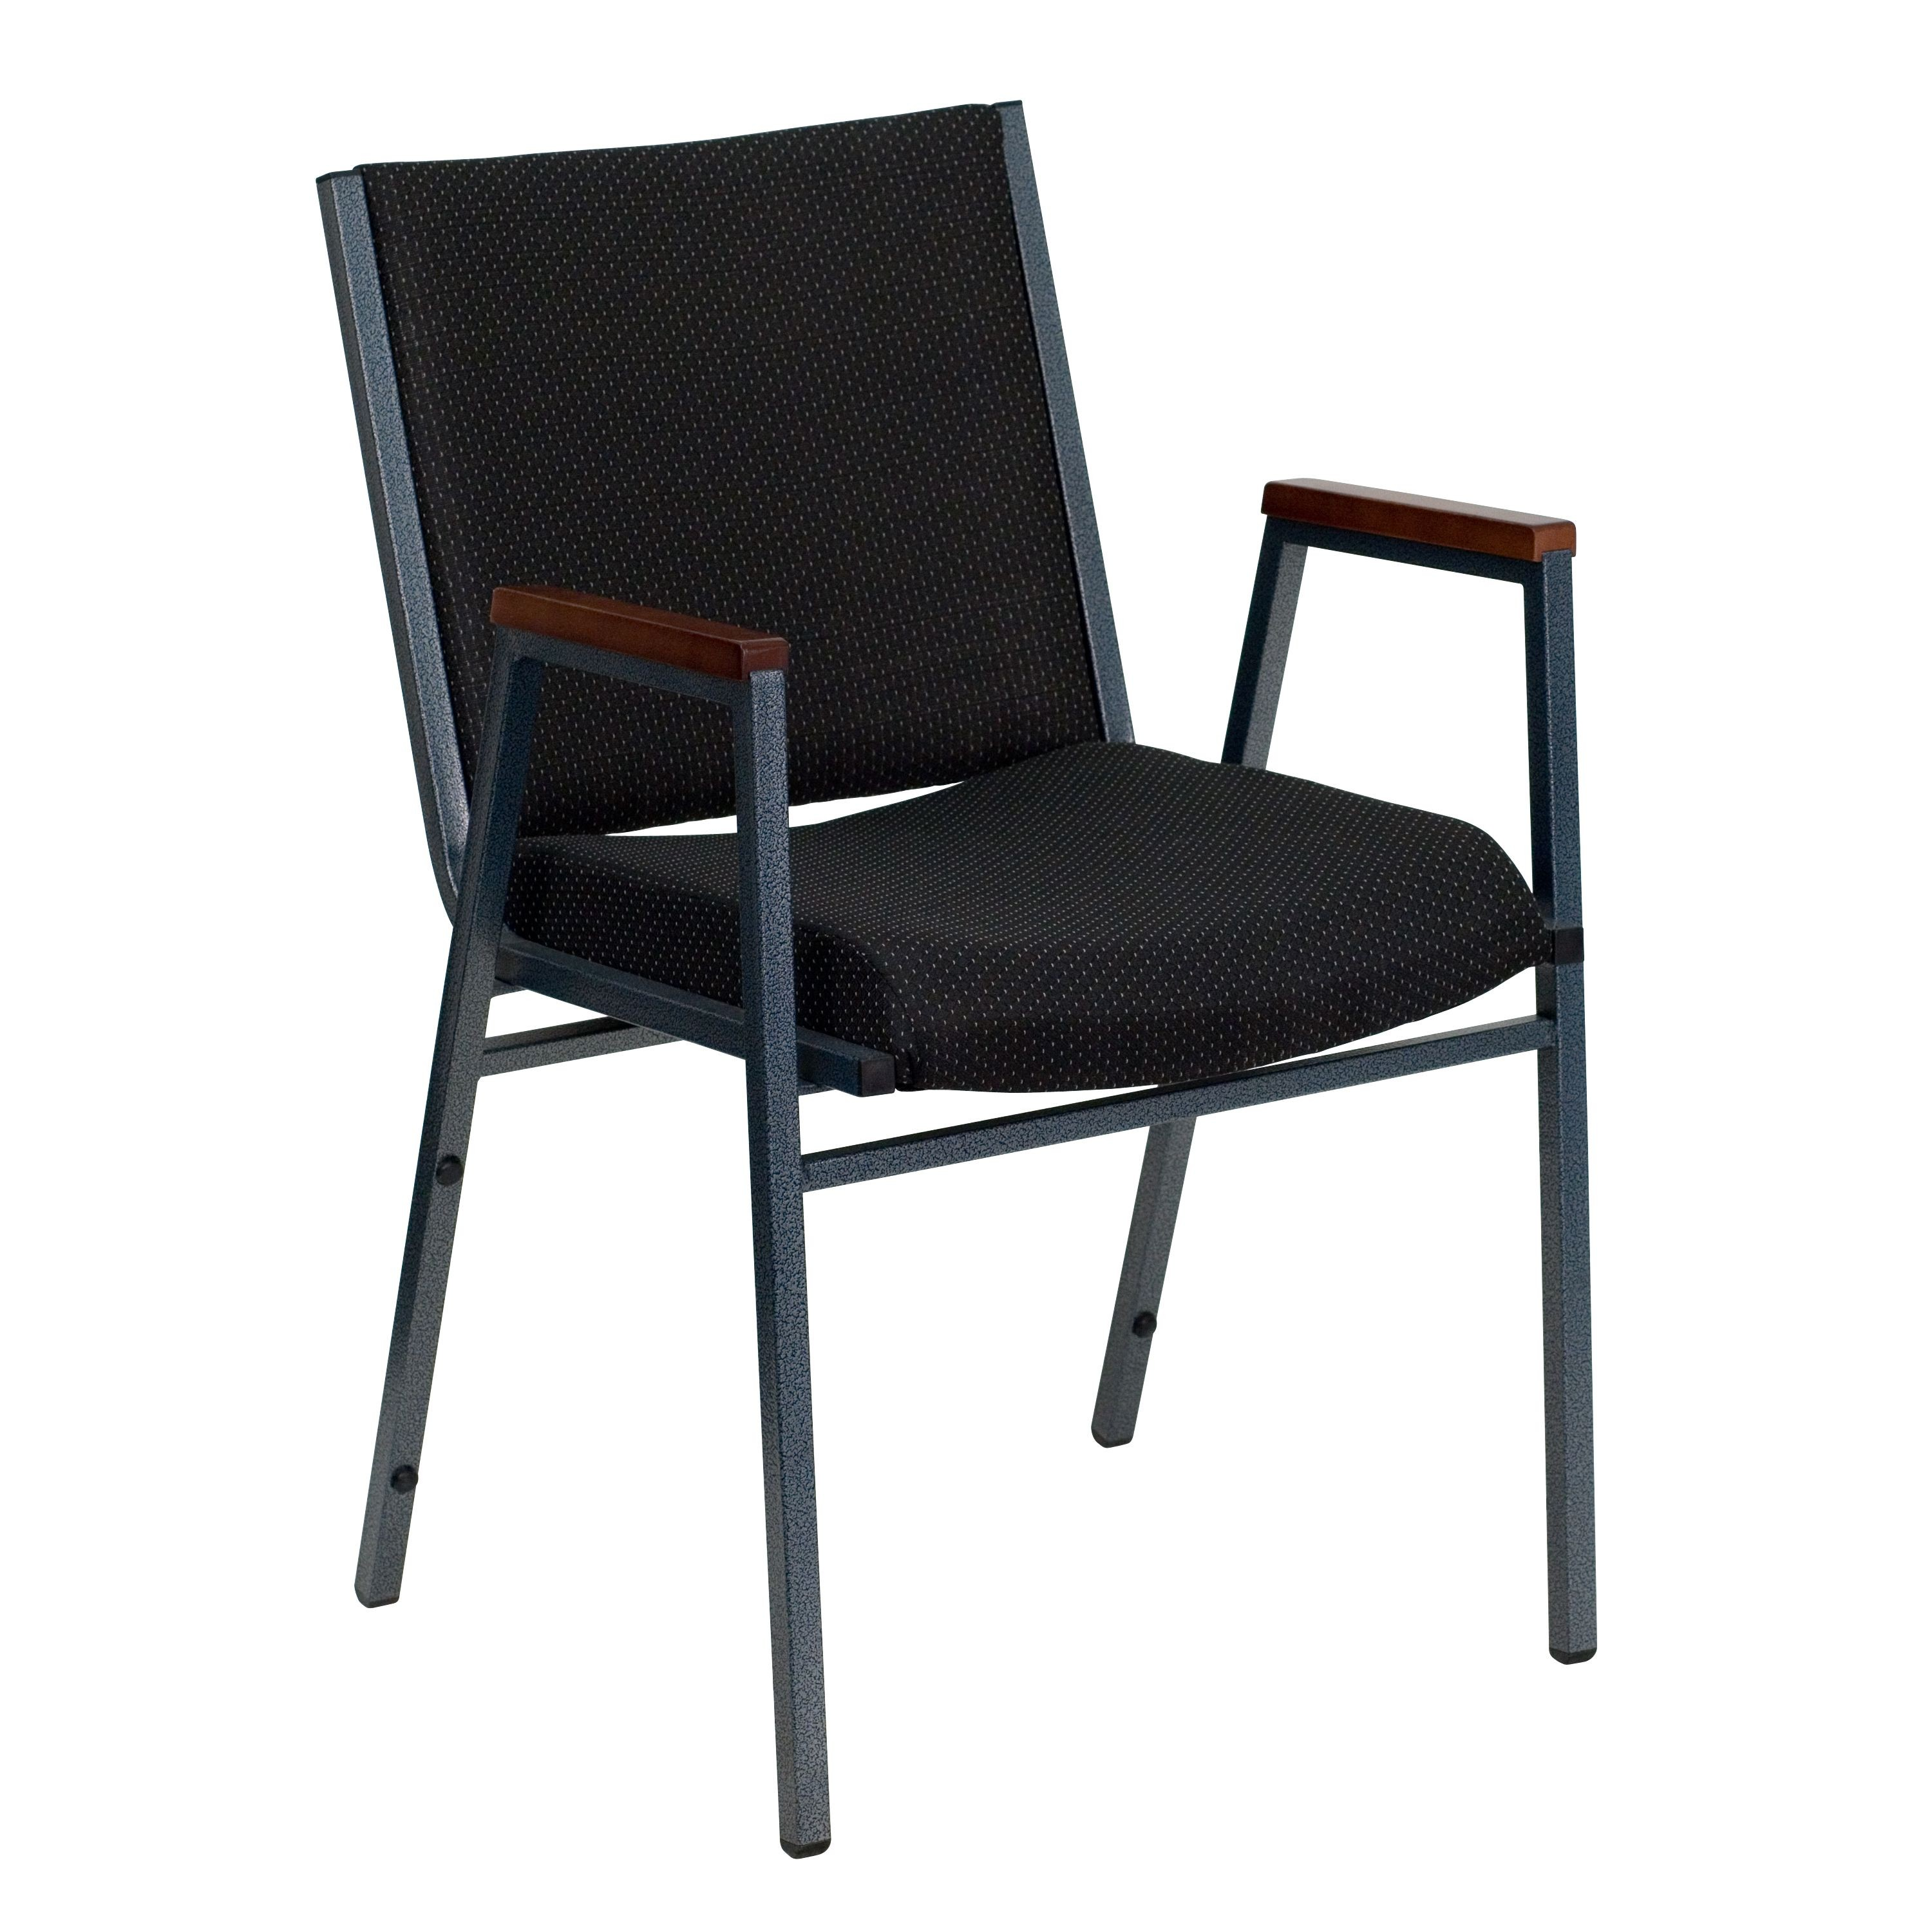 Flash Furniture xu-60154-BK-gg Heavy Duty, 3'' Thickly Padded, Black Patterned Upholstered Stack Chair with Arms